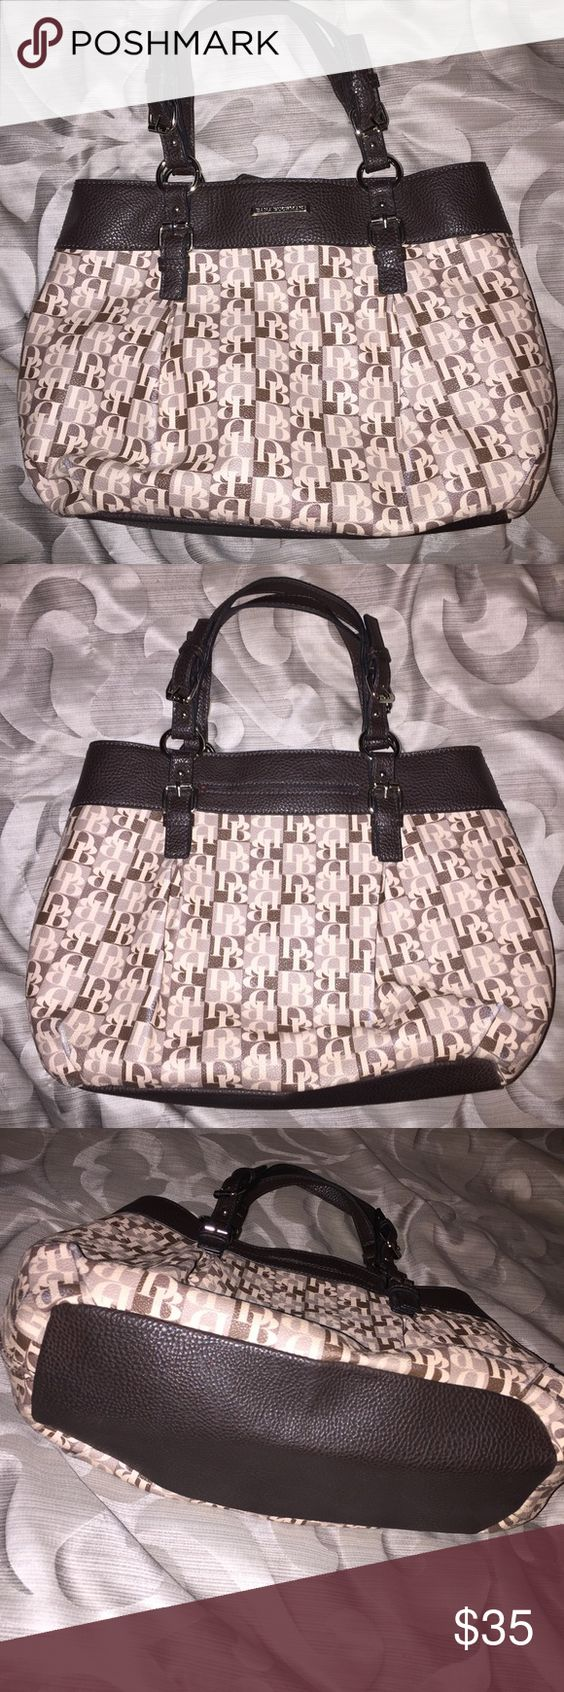 """Dana Buchman Purse Great condition, except some """"rub"""" marks where creases are on bag. Dana Buchman Bags Shoulder Bags"""